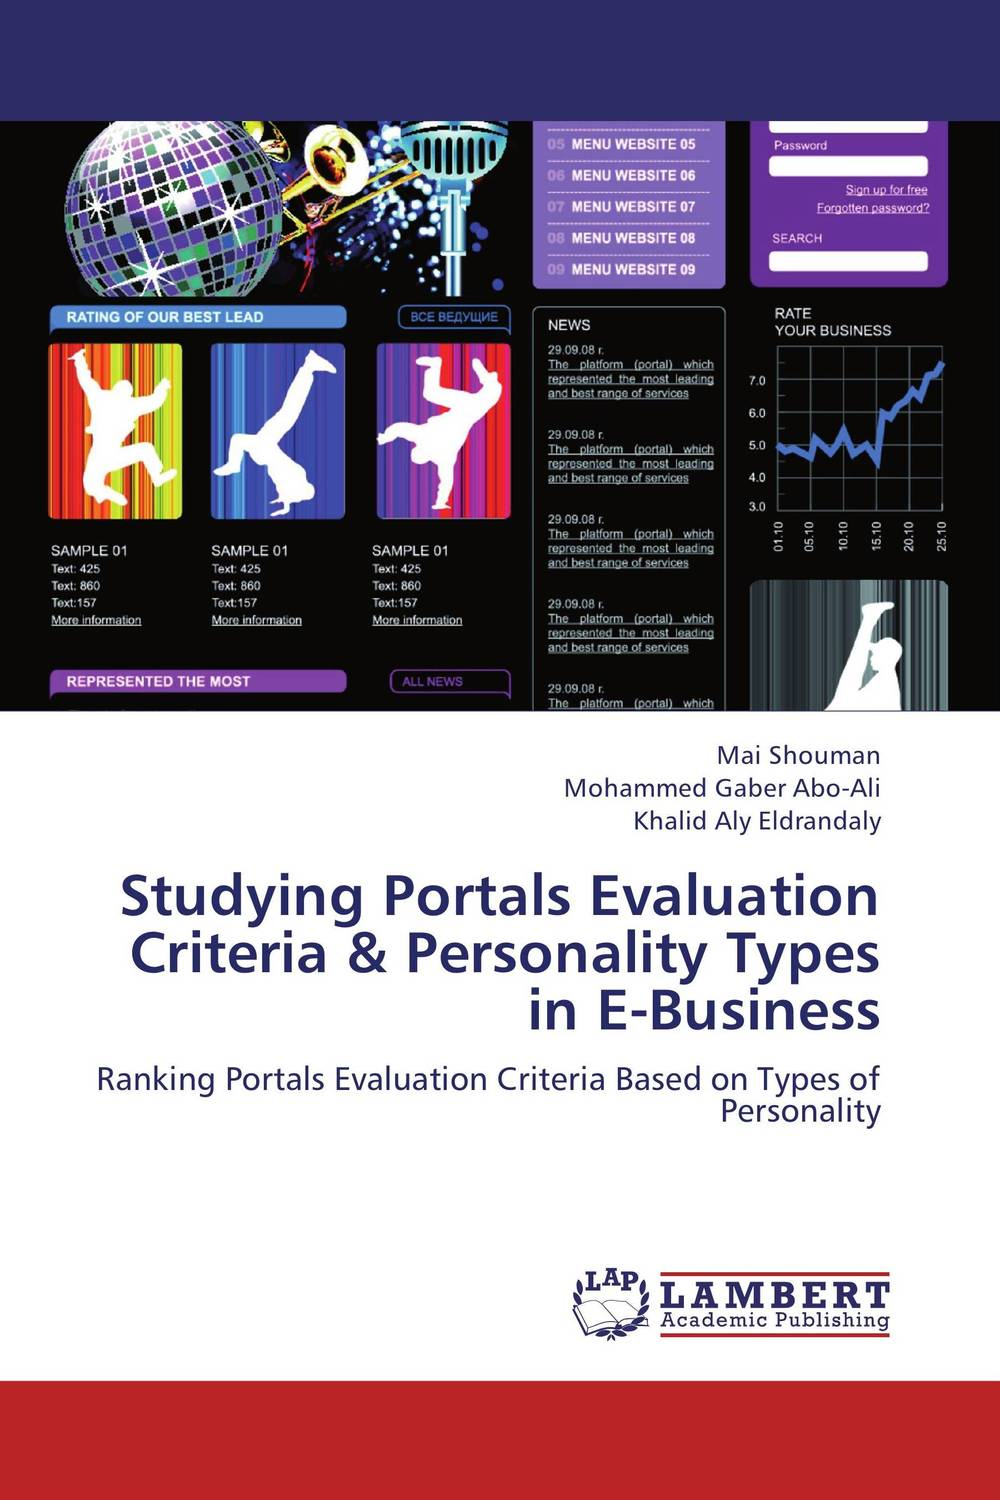 Studying Portals Evaluation Criteria & Personality Types in E-Business corporate portals empowered with xml and web services